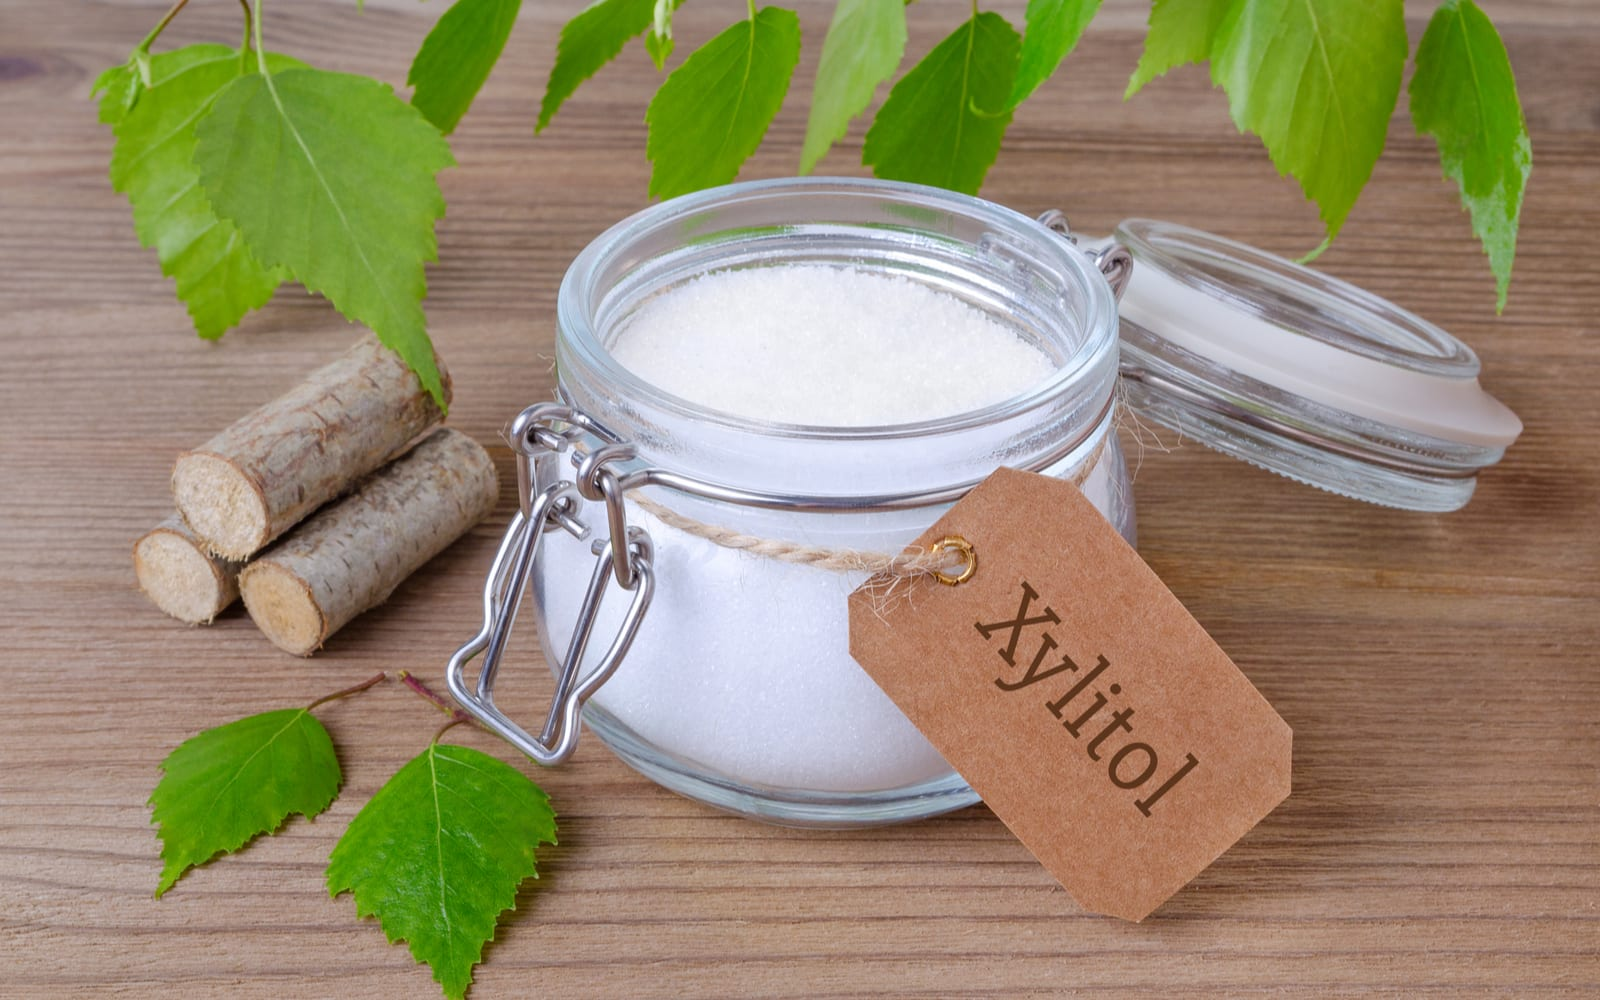 Container of Xylitol